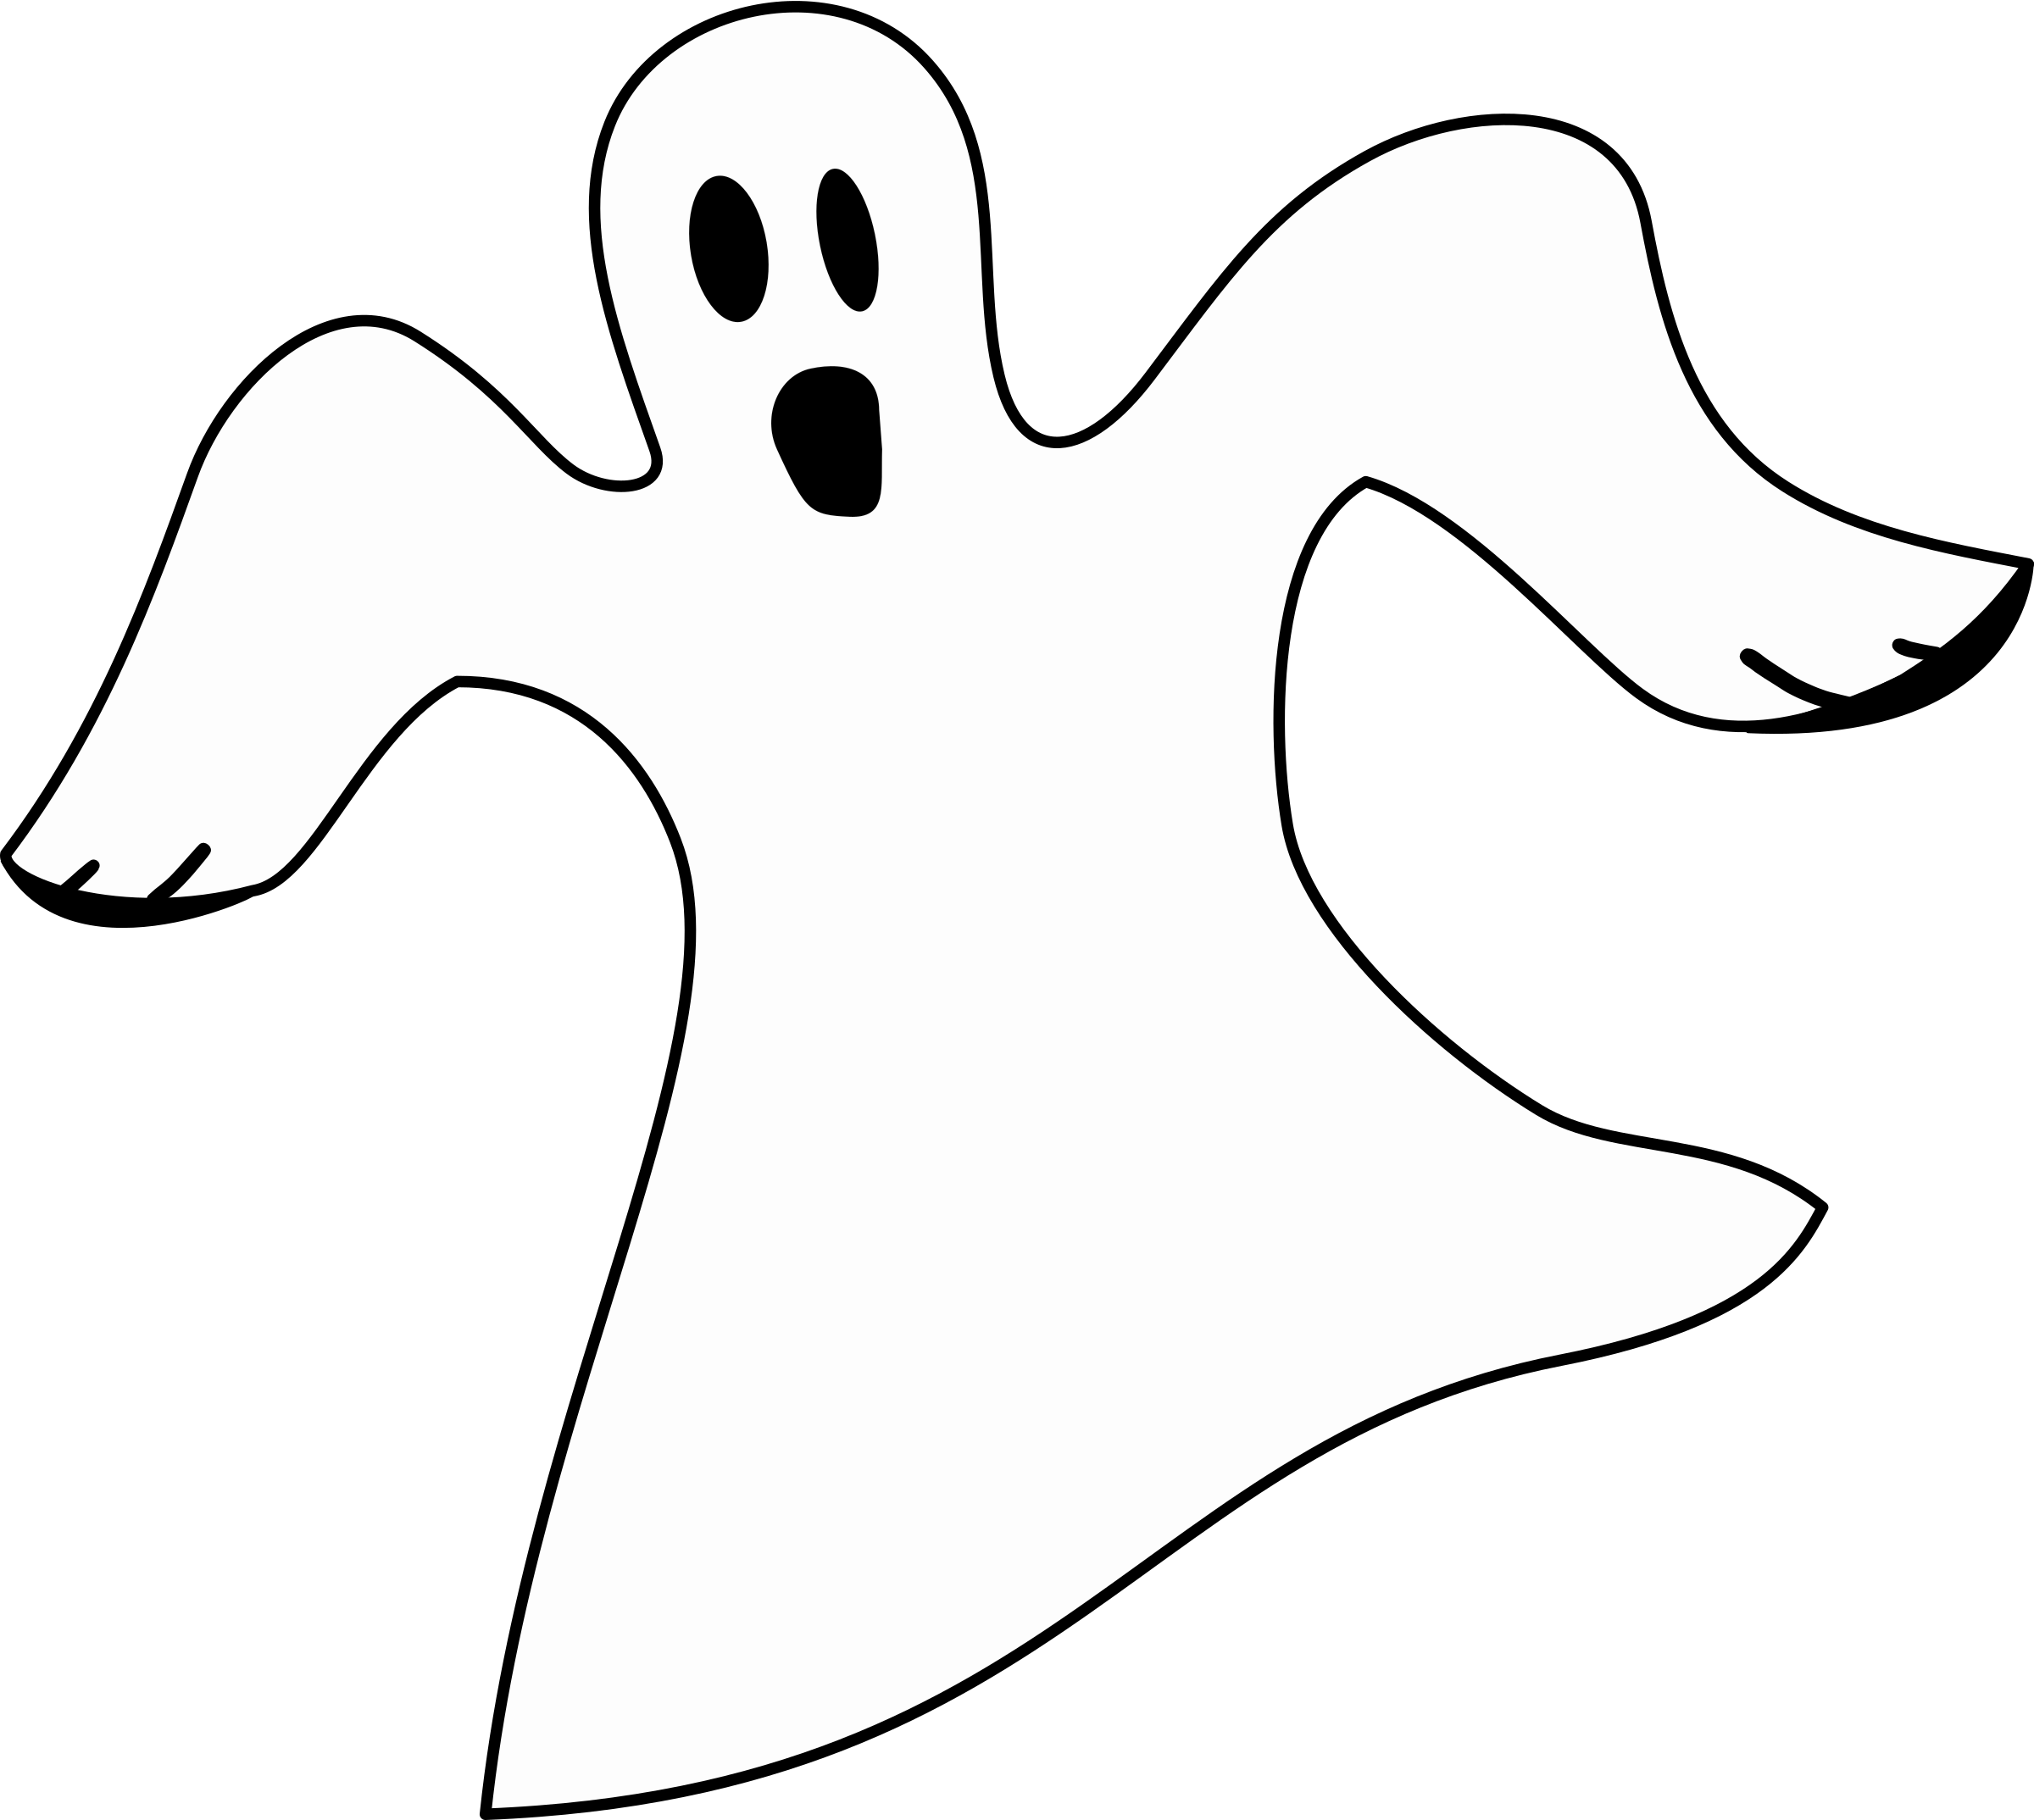 Ghost clipart white lady ghost. Collection of simple